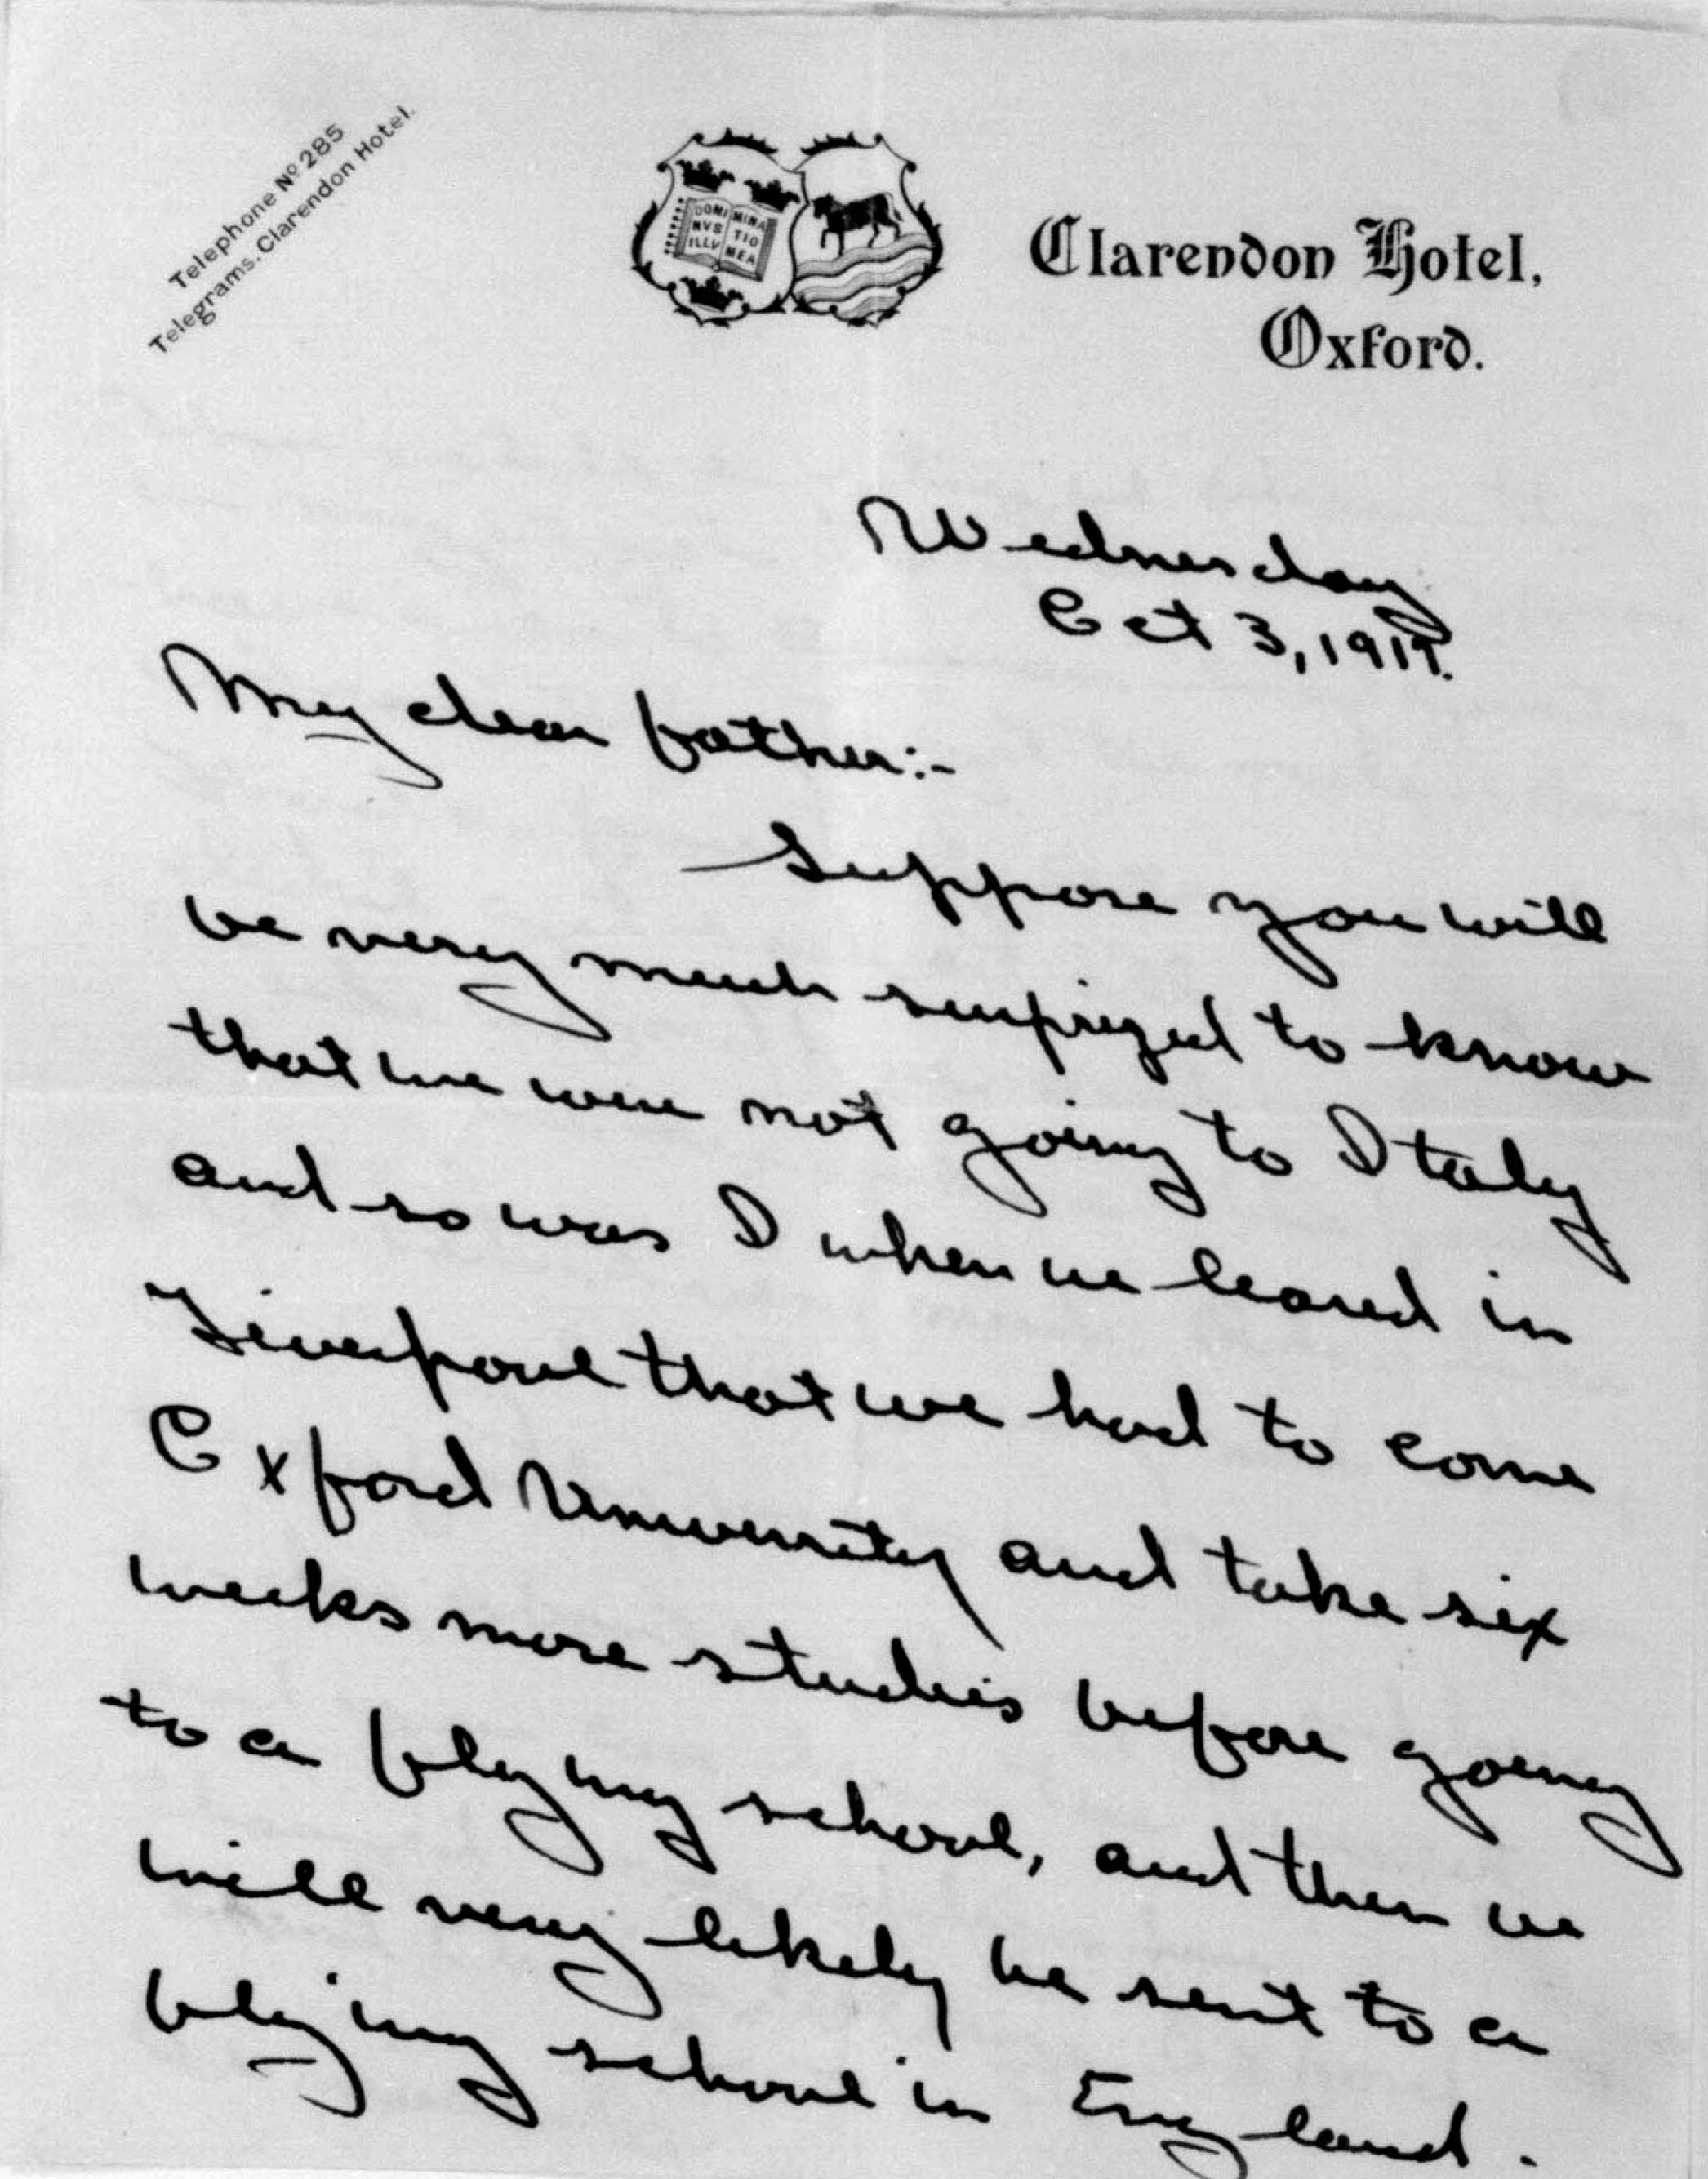 First page of a letter dated October 3, 1917, on Clarendon Hotel Oxford letterhead from Fry to his father telling him he will not go to Italy but will stay in England.